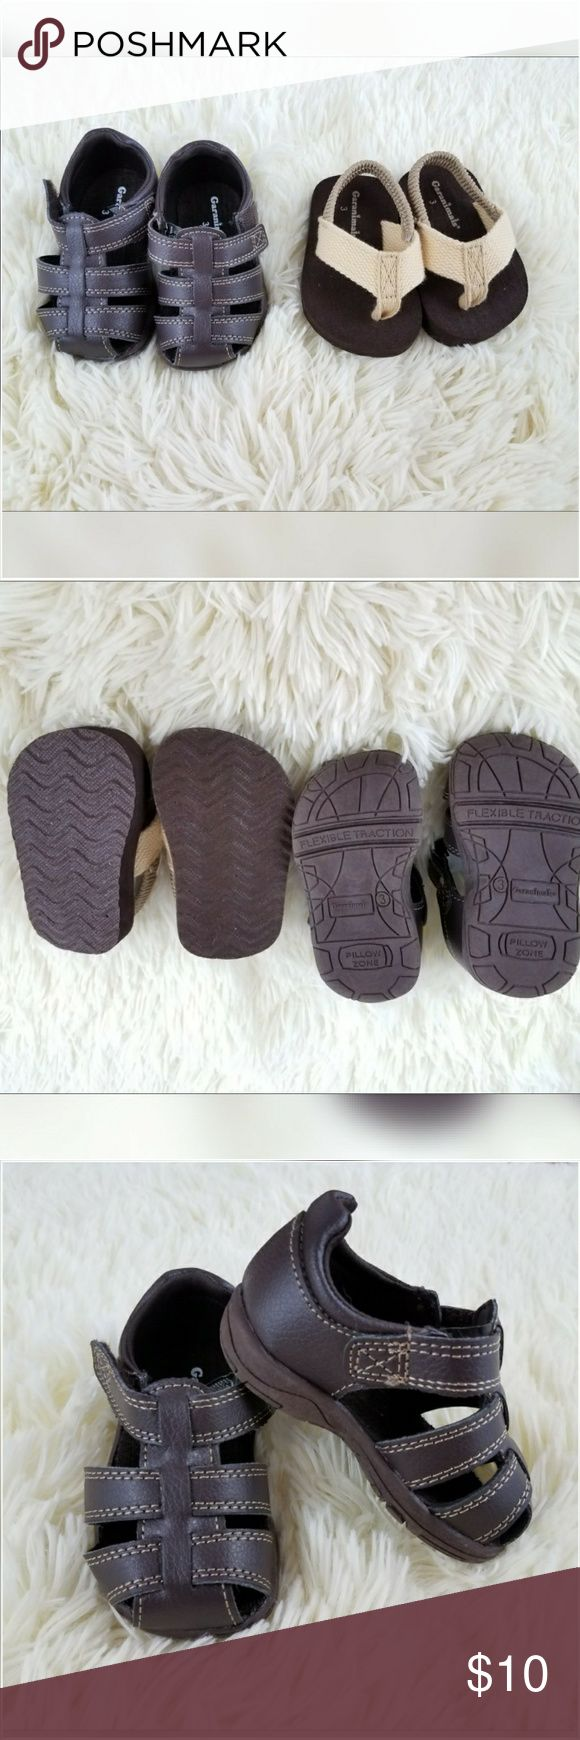 🆕 New Lot of 2 Garanimals Baby Sandals size 3 Lot of 2 Garanimals Baby Sandals  NEW without tags  1pair is brown with adjustable Velcro strap  1 pair is brown and tan and look like flip flops with an elastic band to keep them on babies foot.  They are both size 3  Would be okay for male or female Garanimals Shoes Baby & Walker